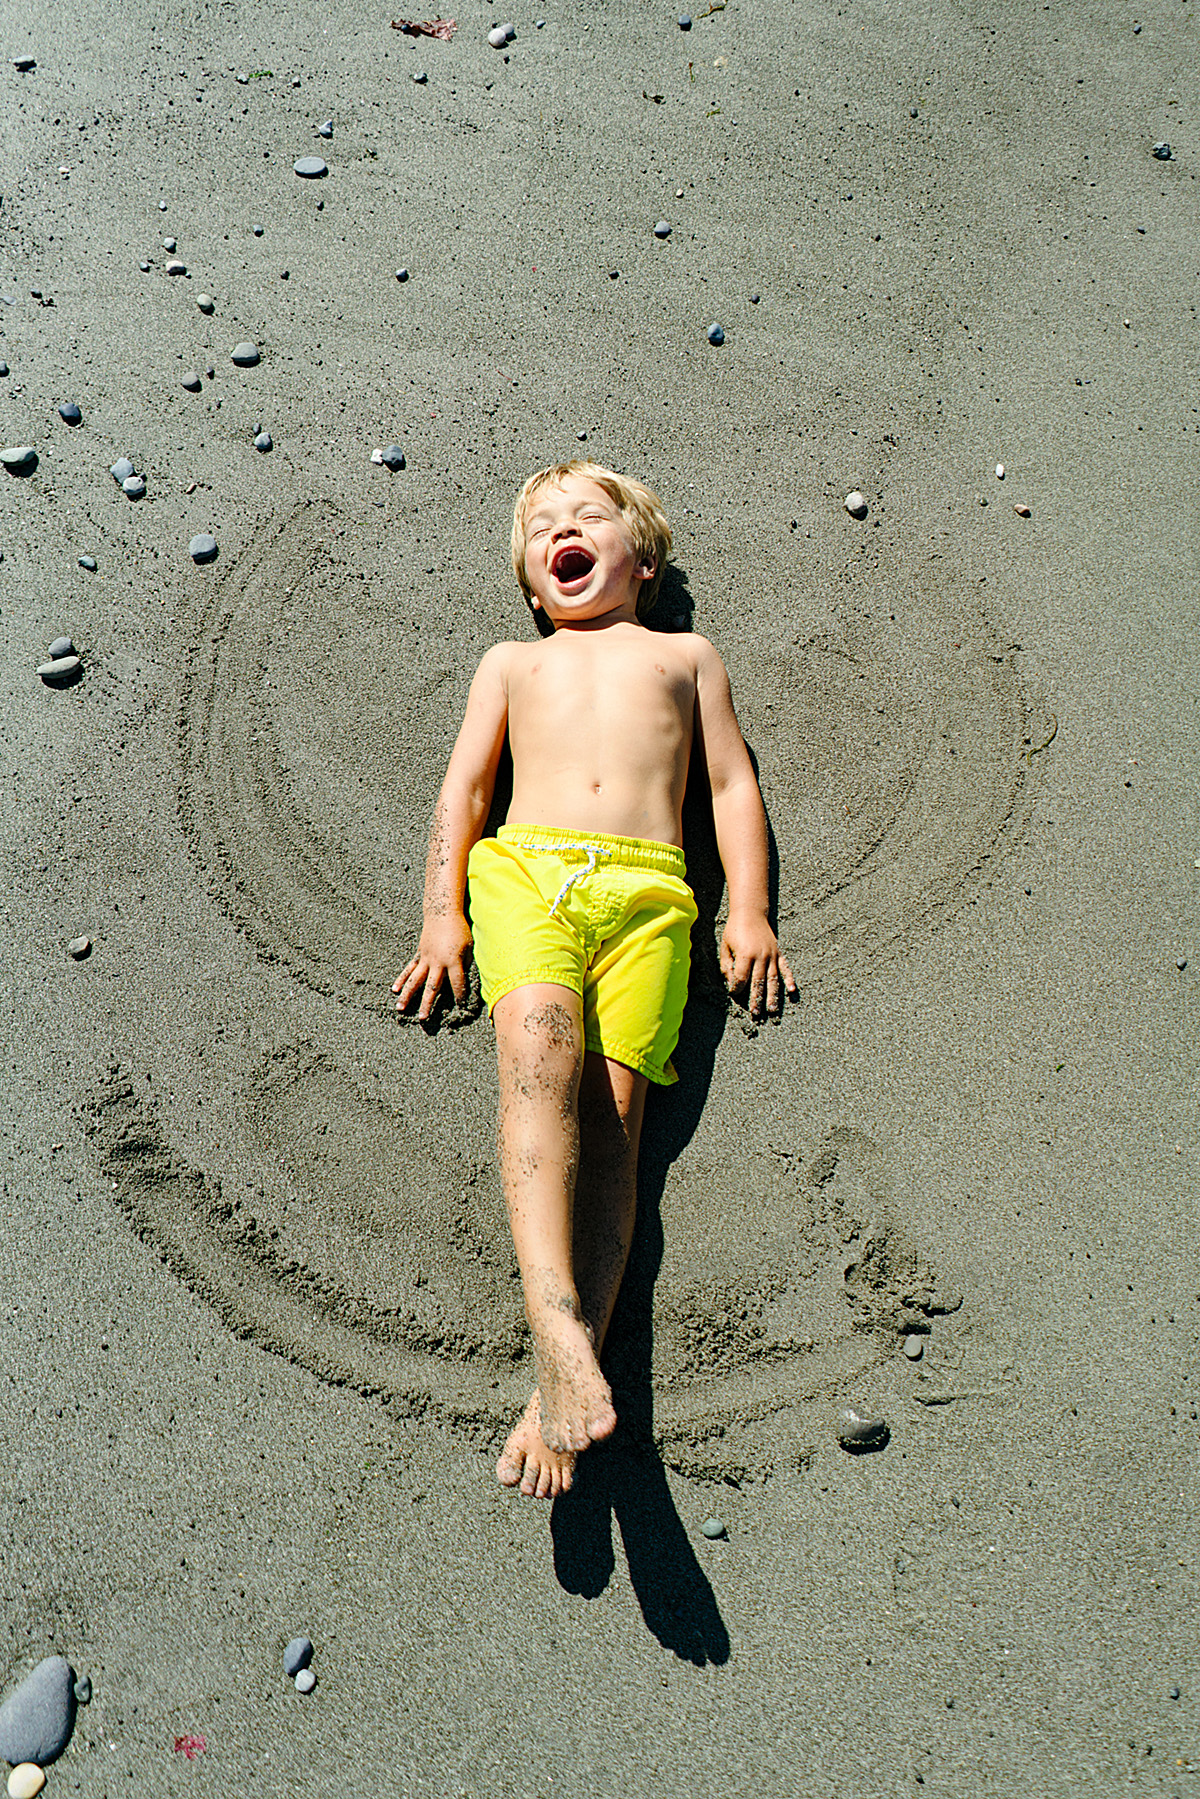 Best Beaches for Kids in Seattle, Washington